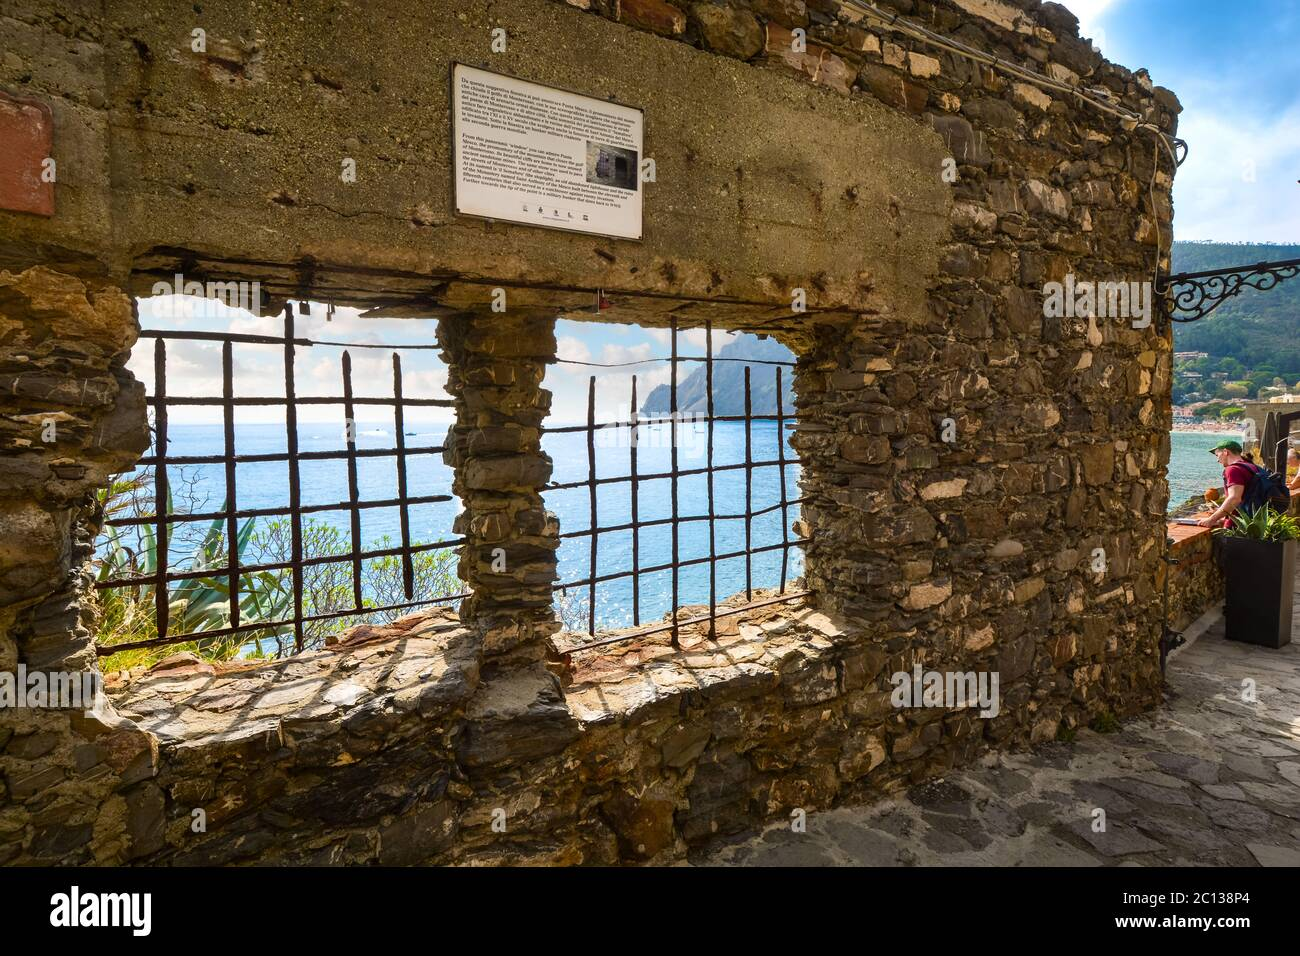 Tourists stop to enjoy the view of the Ligurian Sea on the walking path between the old and new sections of Monterosso Al Mare, Cinque Terre, Italy Stock Photo